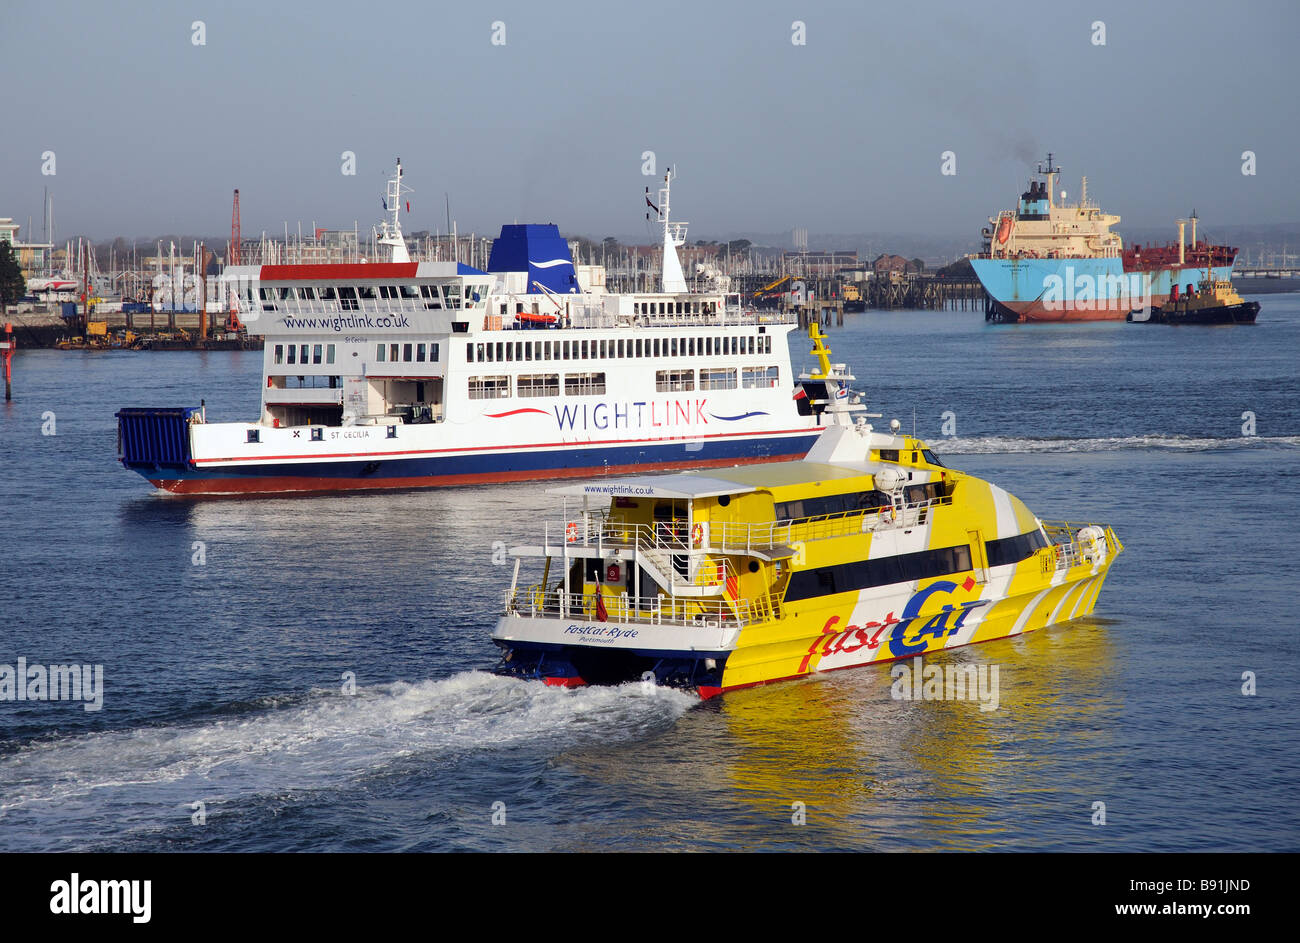 Portsmouth Harbour busy with shipping St Cecilia a roro ferry and seacat ryde a passenger ferry both operate to - Stock Image